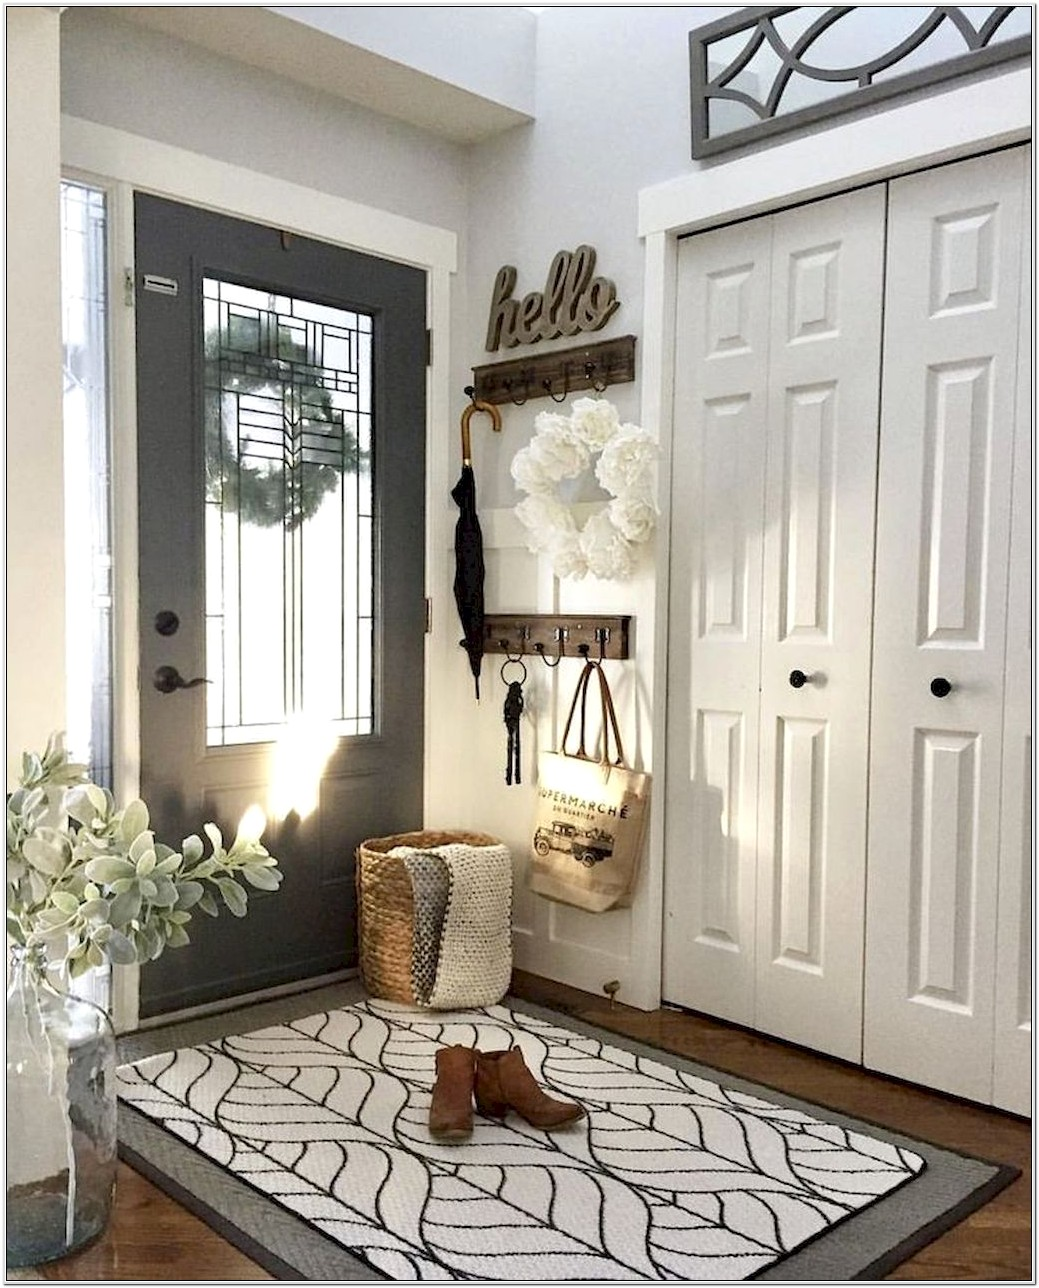 Living Room Ideas With Entryway